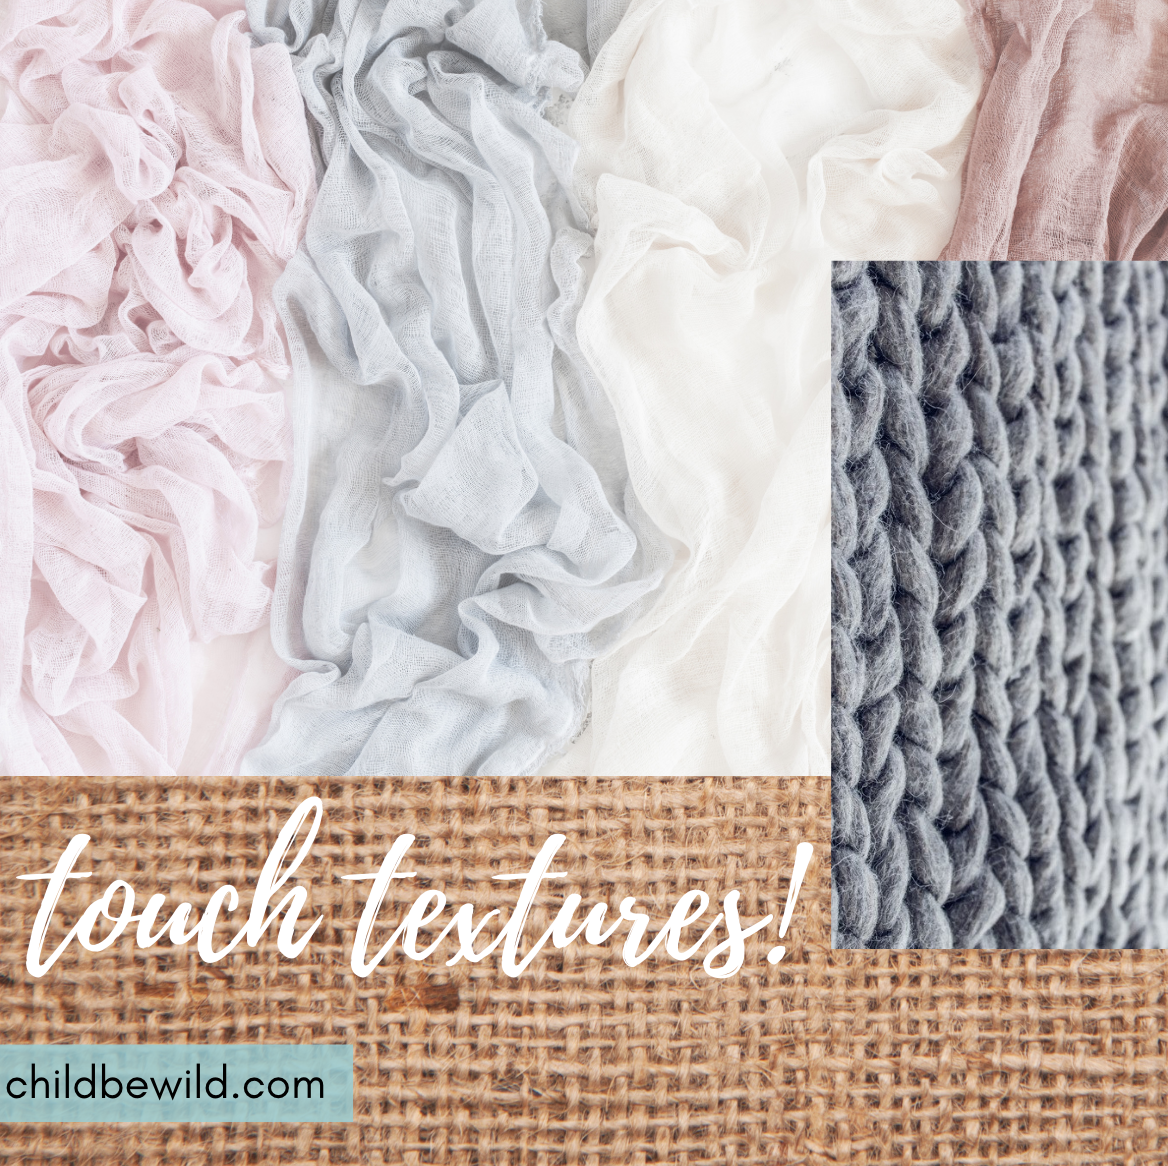 Touch Textures childbewild.com text below photo collage of curled sheer fabrics, braided wool fabric, and rough natural texture